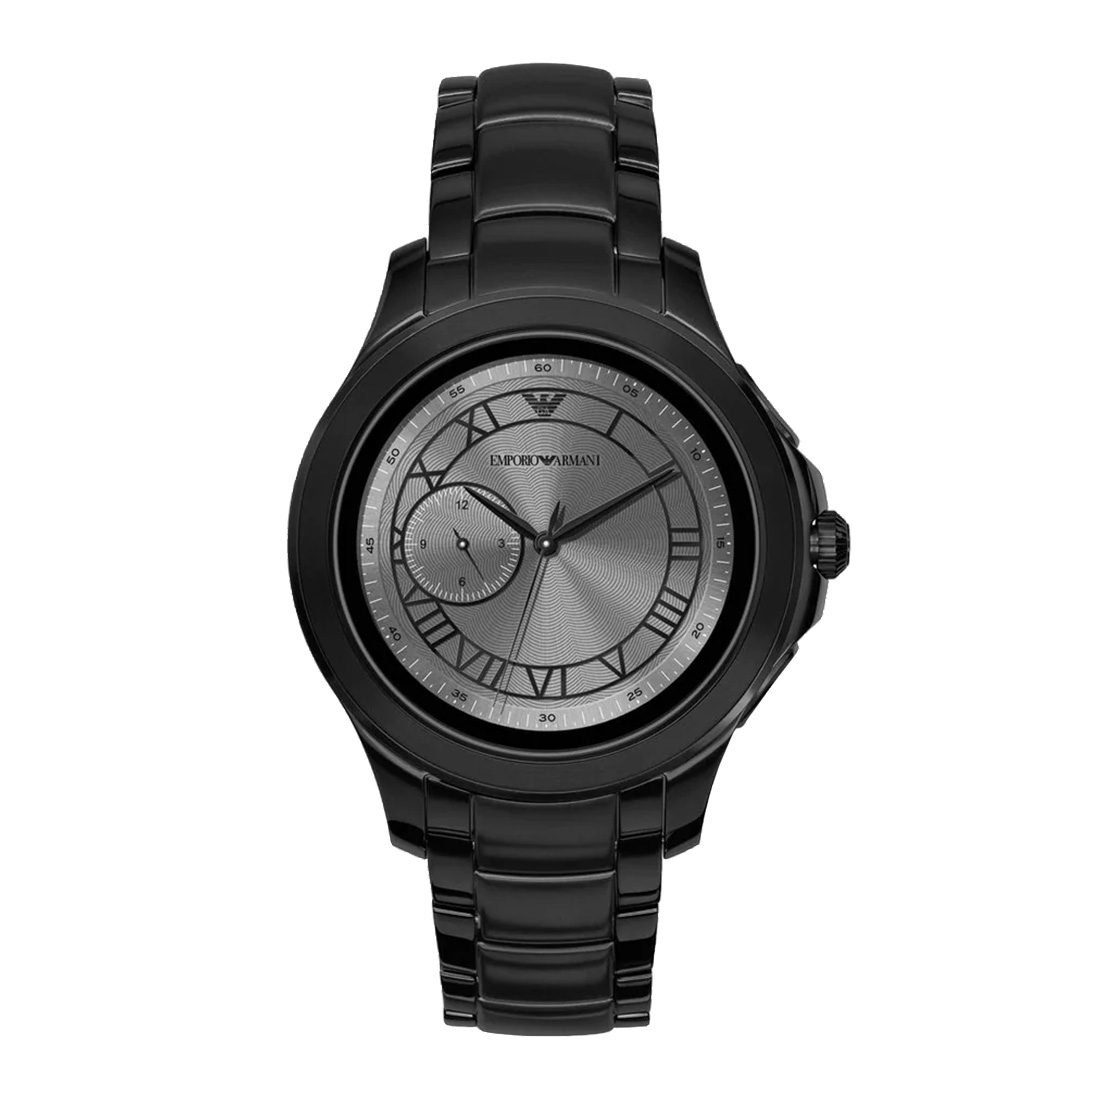 Smartwatch Emporio Armani - Alberto Art5011 Black imagine